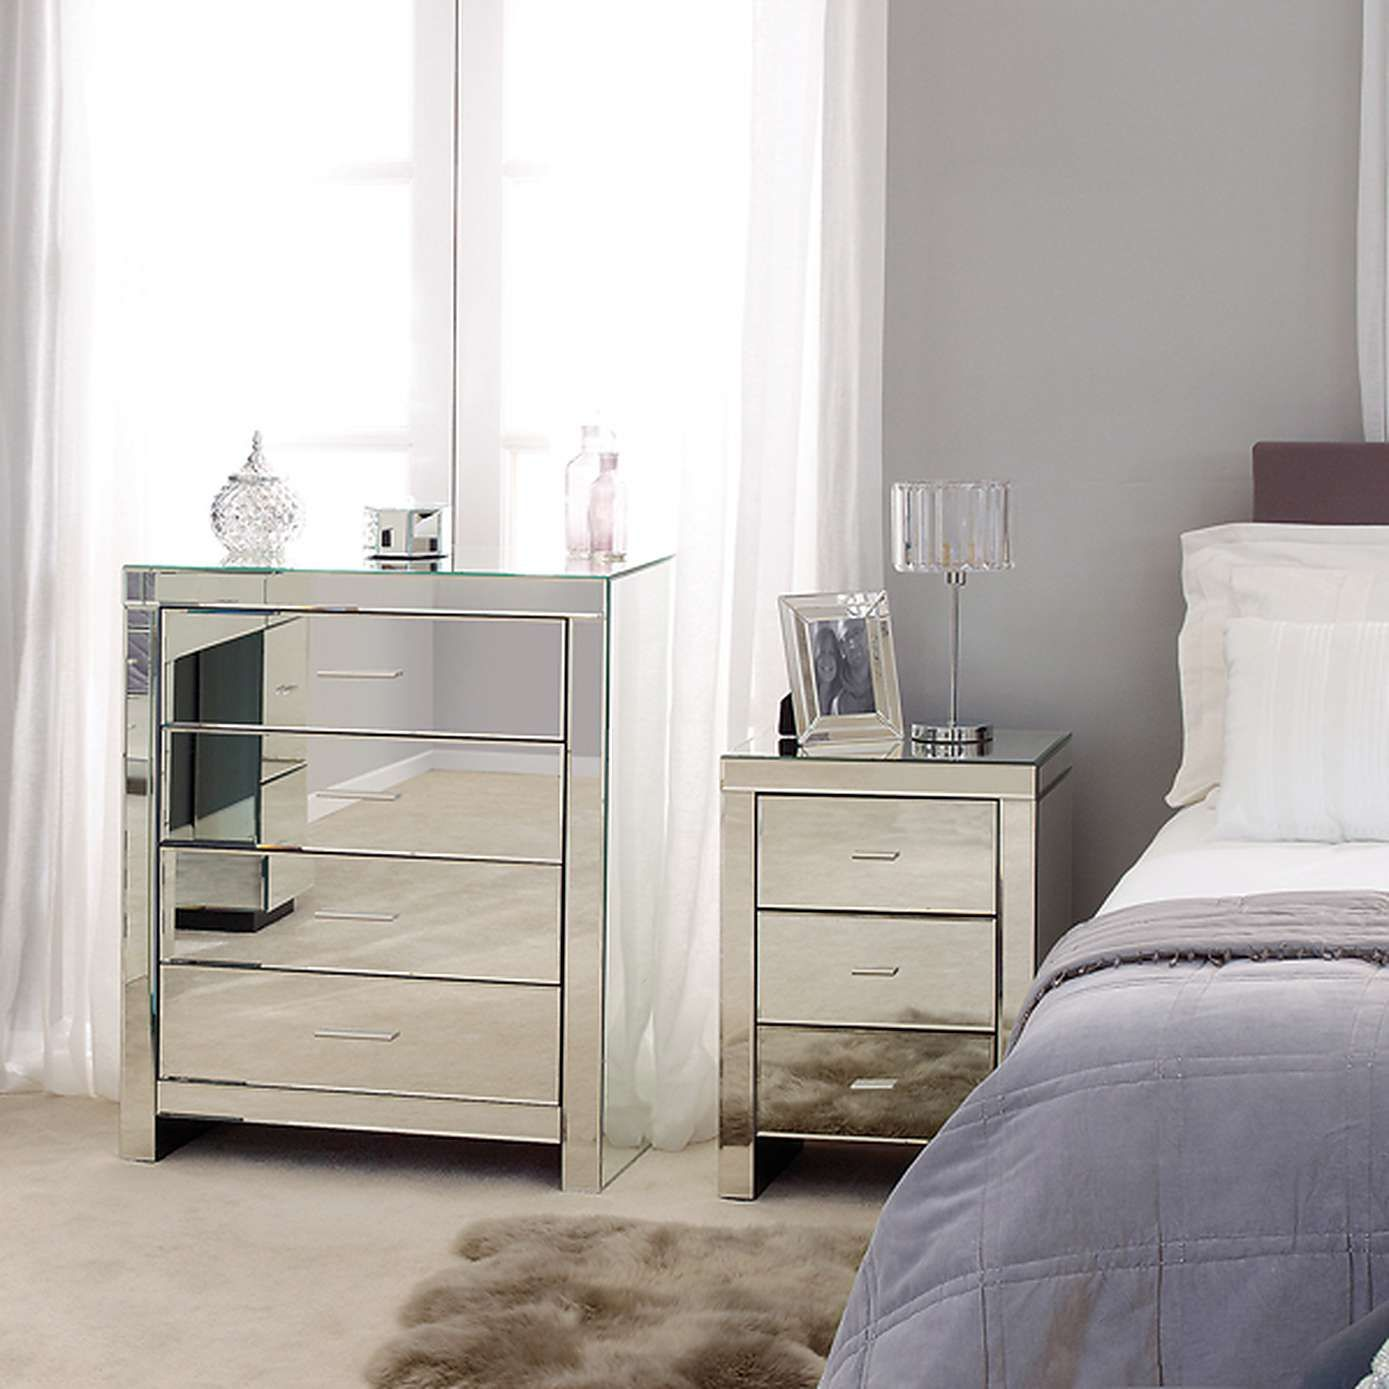 Venetian Mirrored Bedroom Furniture Collection Dunelm Mirrored